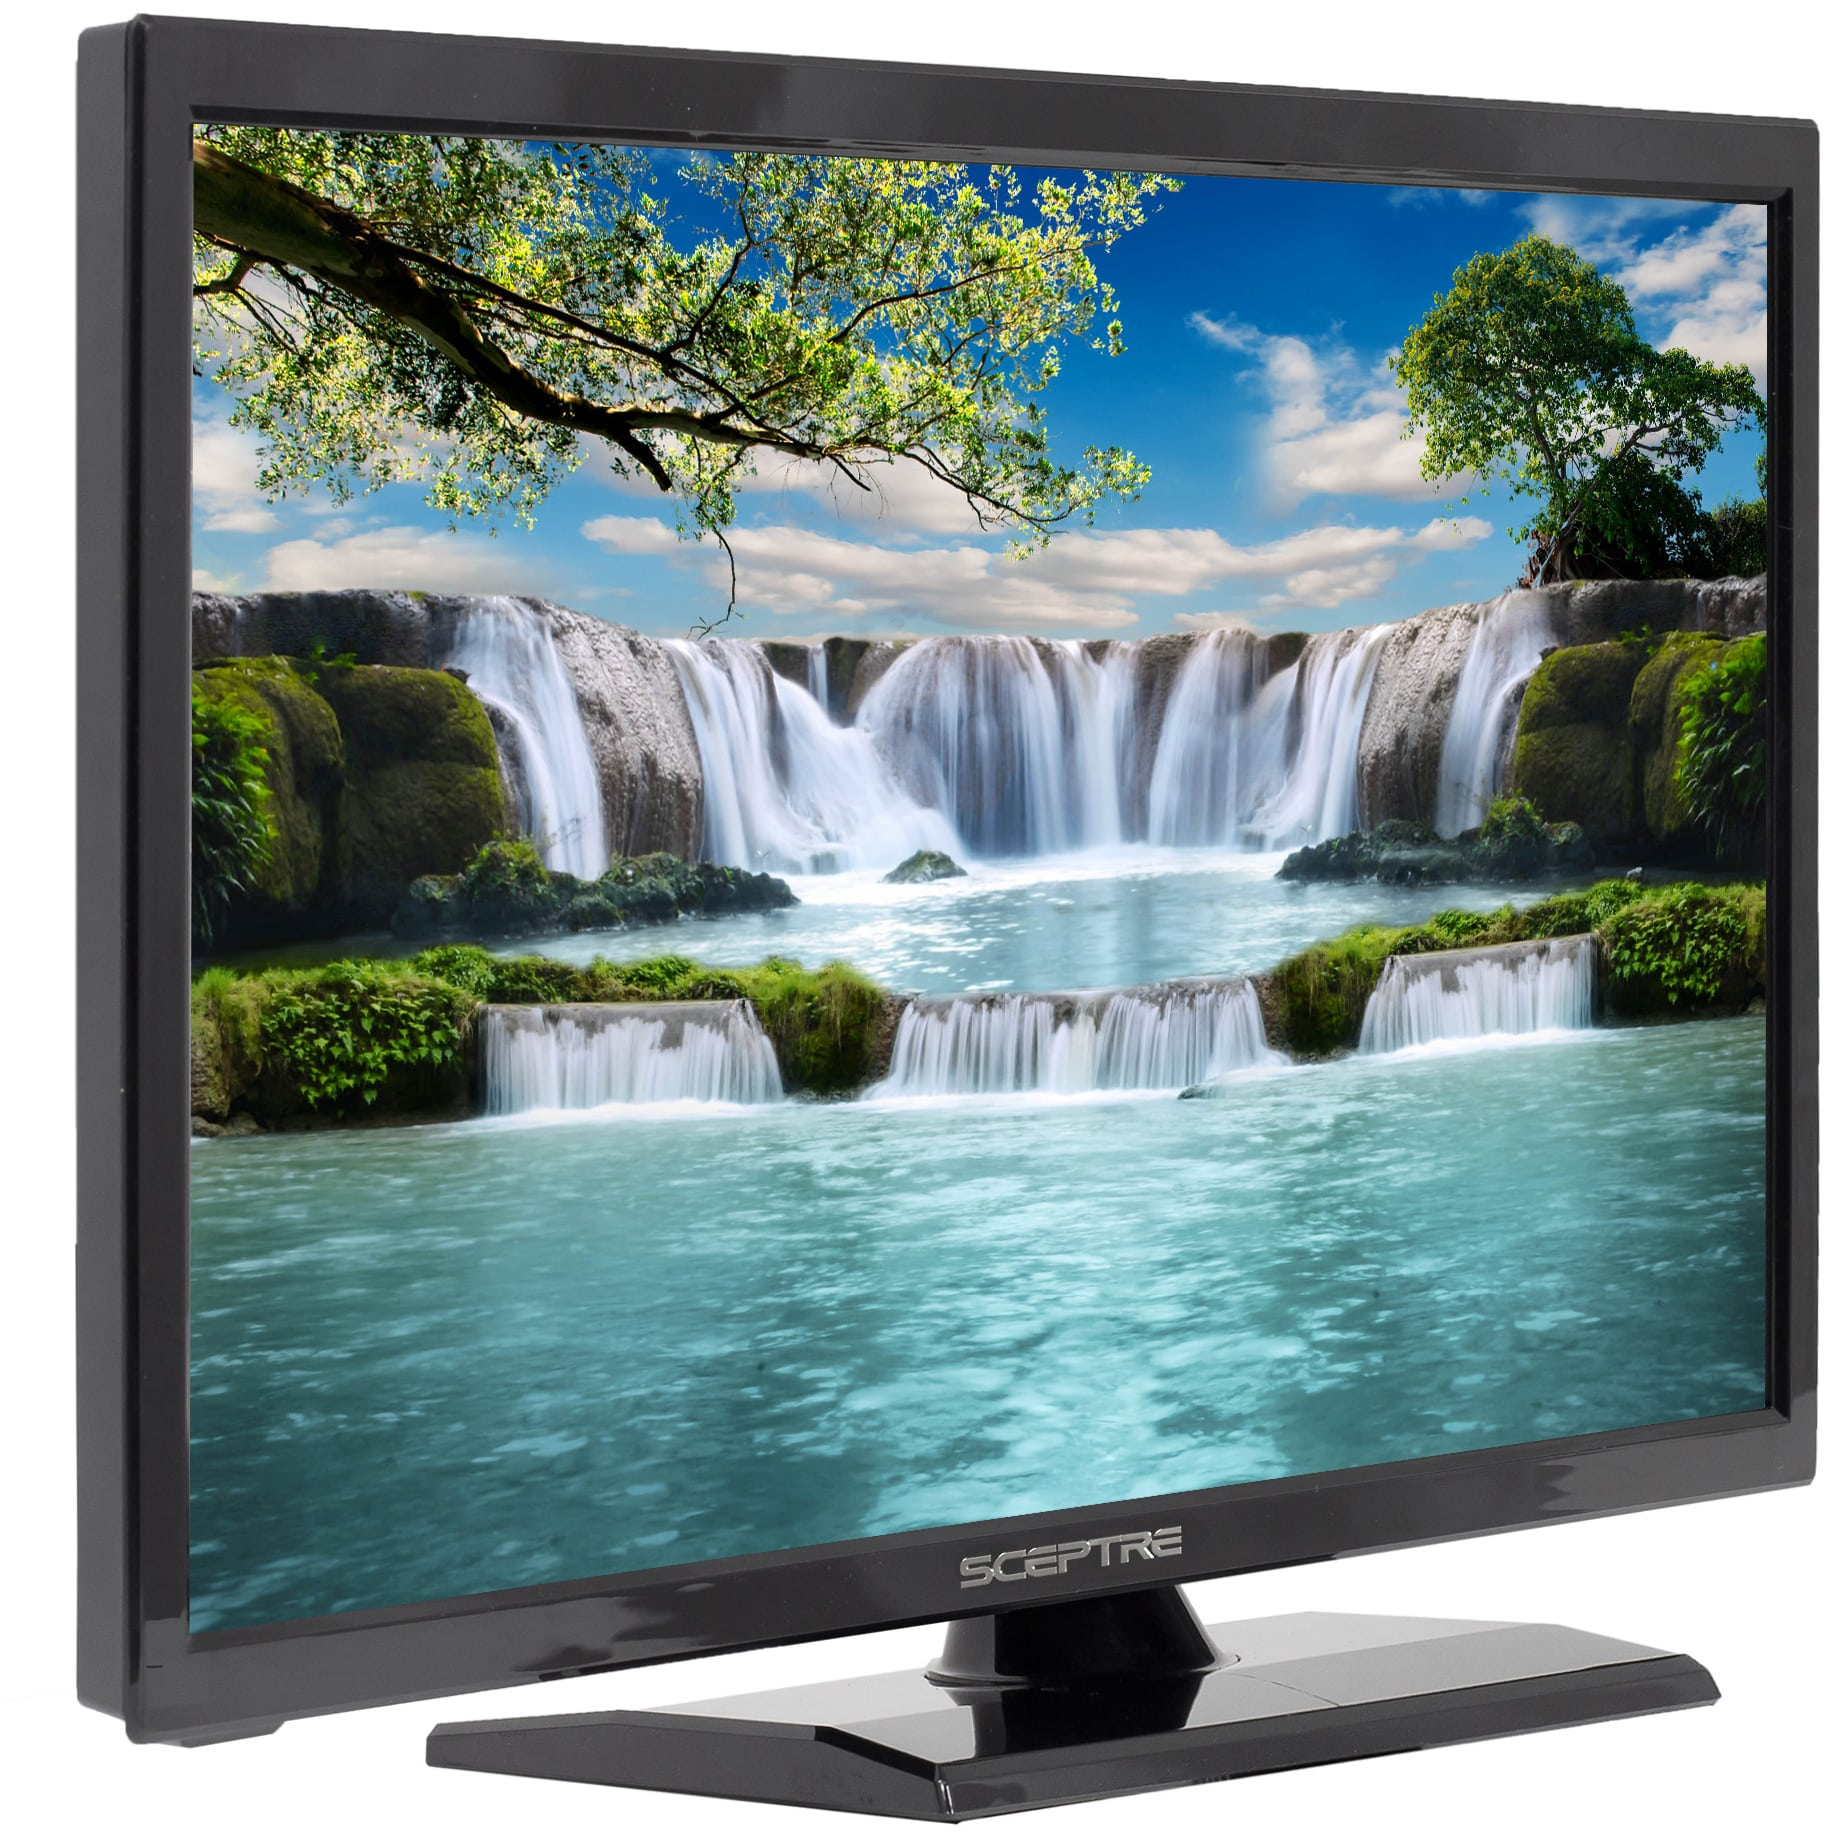 "Sceptre 19"" Class HD (720P) LED TV (E195BD-SR) with Built-in DVD Player"